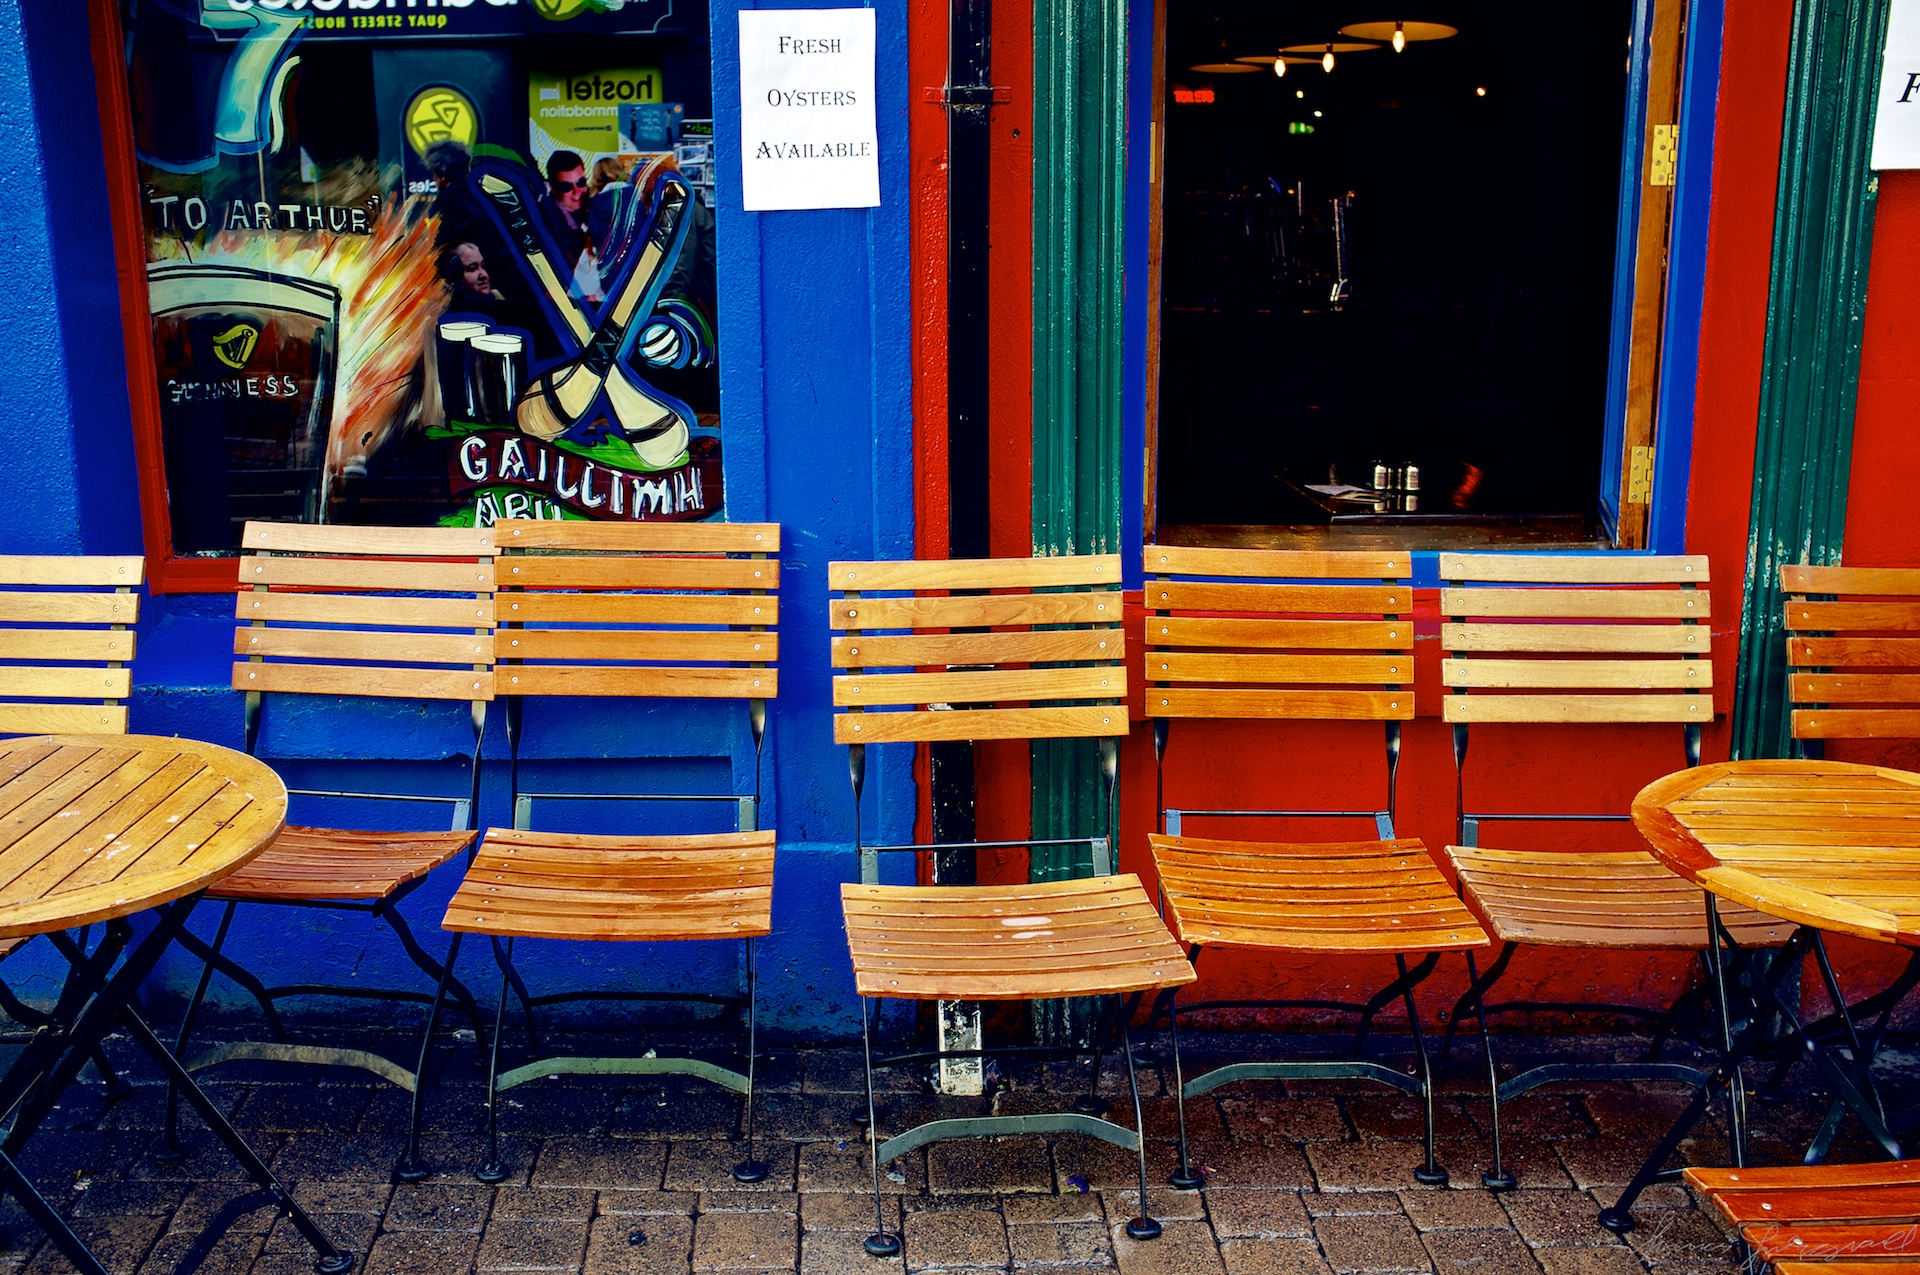 Seats outside a galway pub